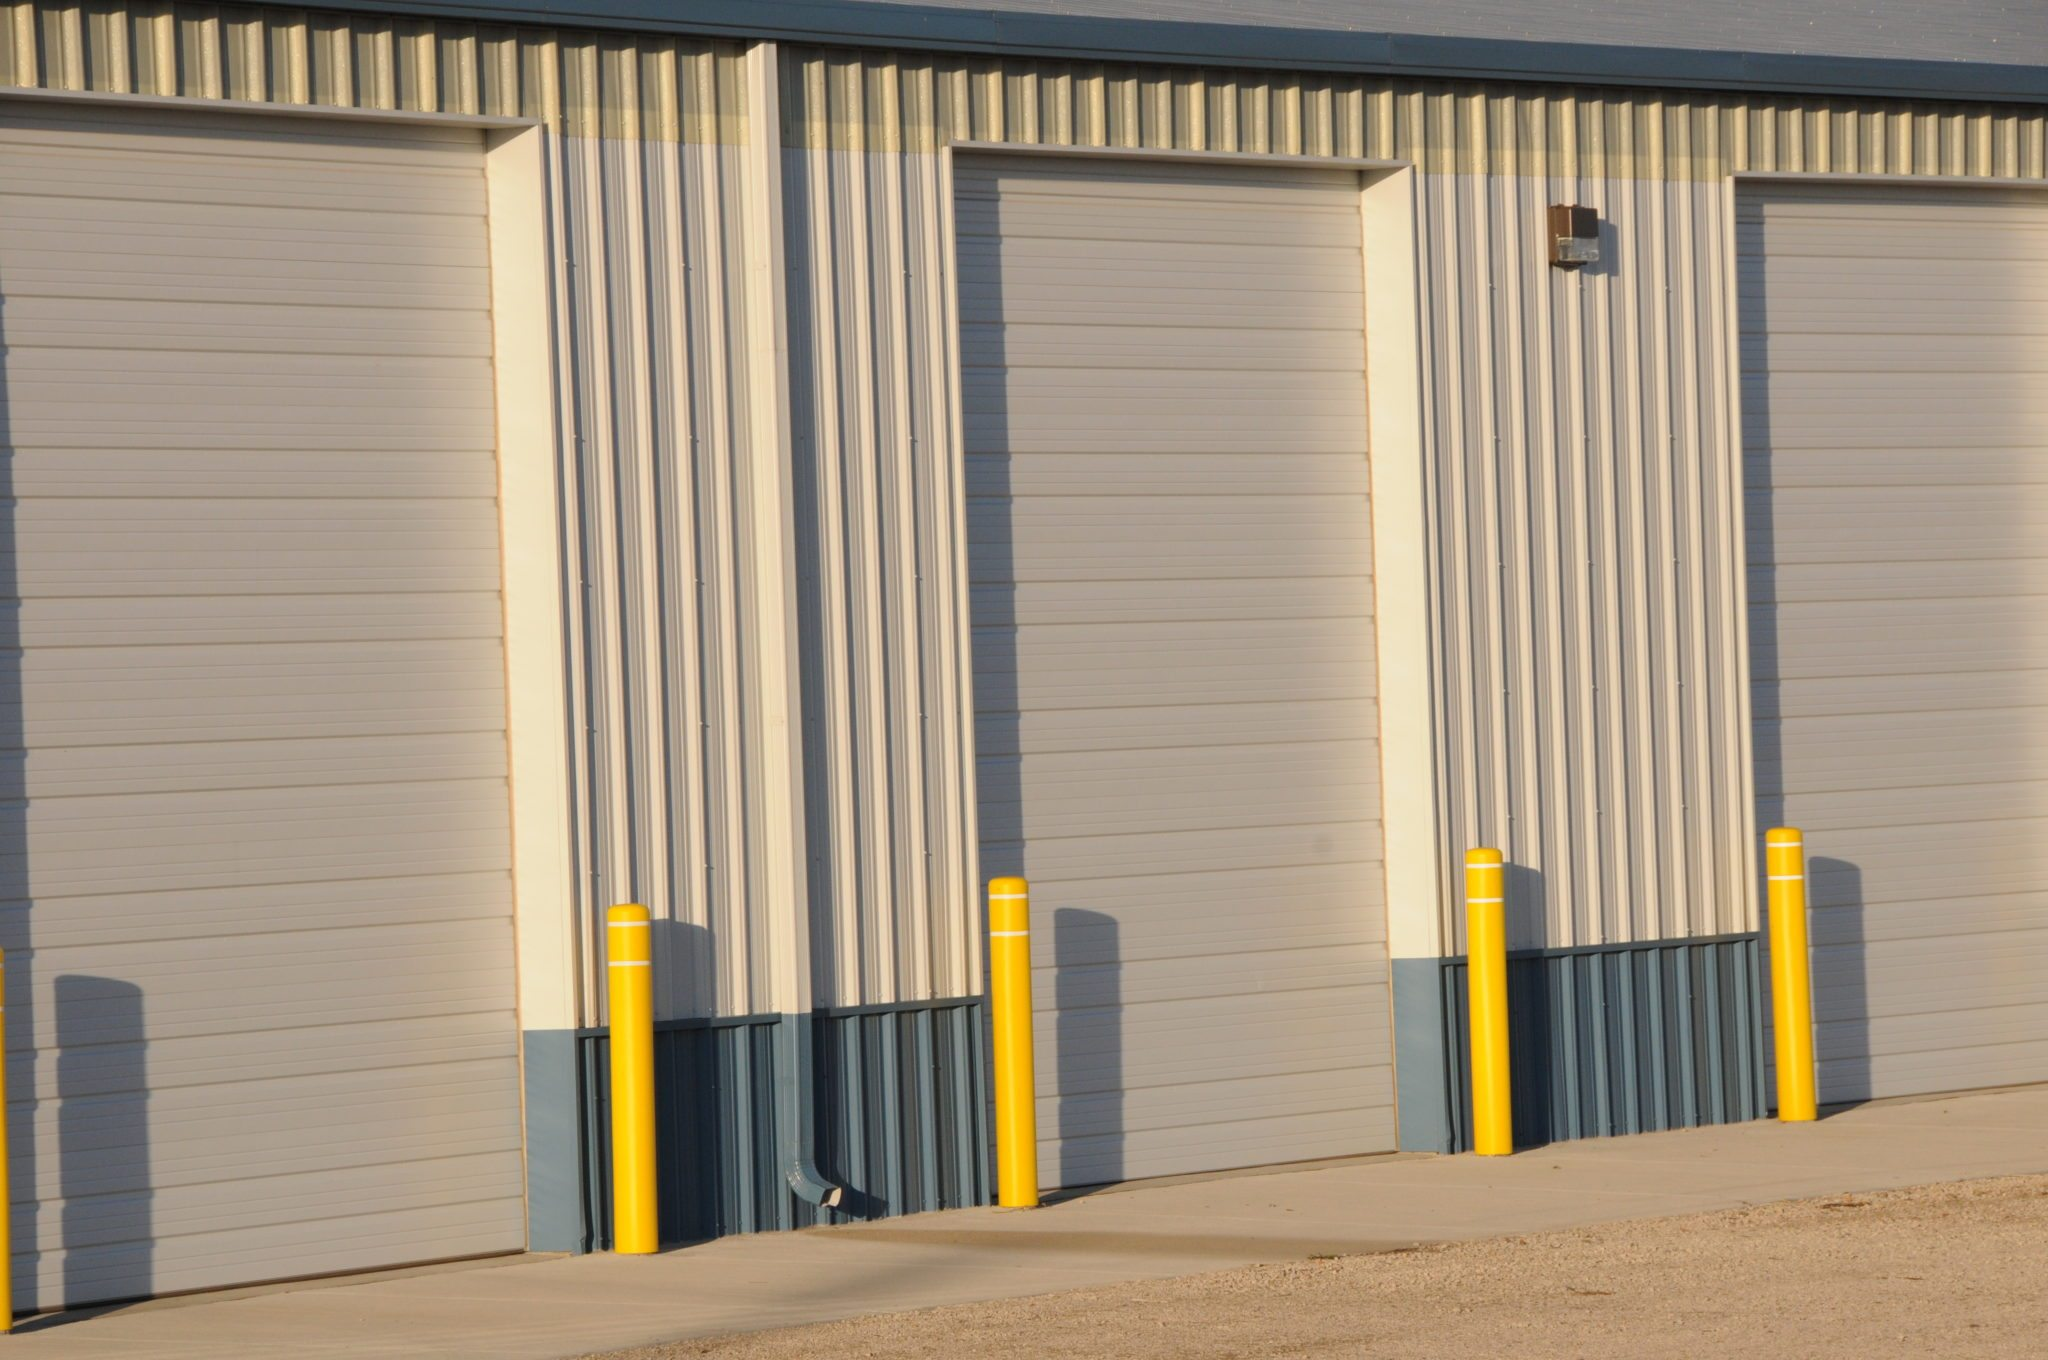 Door track with metal building hardware and weatheru2010strip for top and jambs is included with every door ordered from CSBC. & Overhead Doors - Roll-up Doors